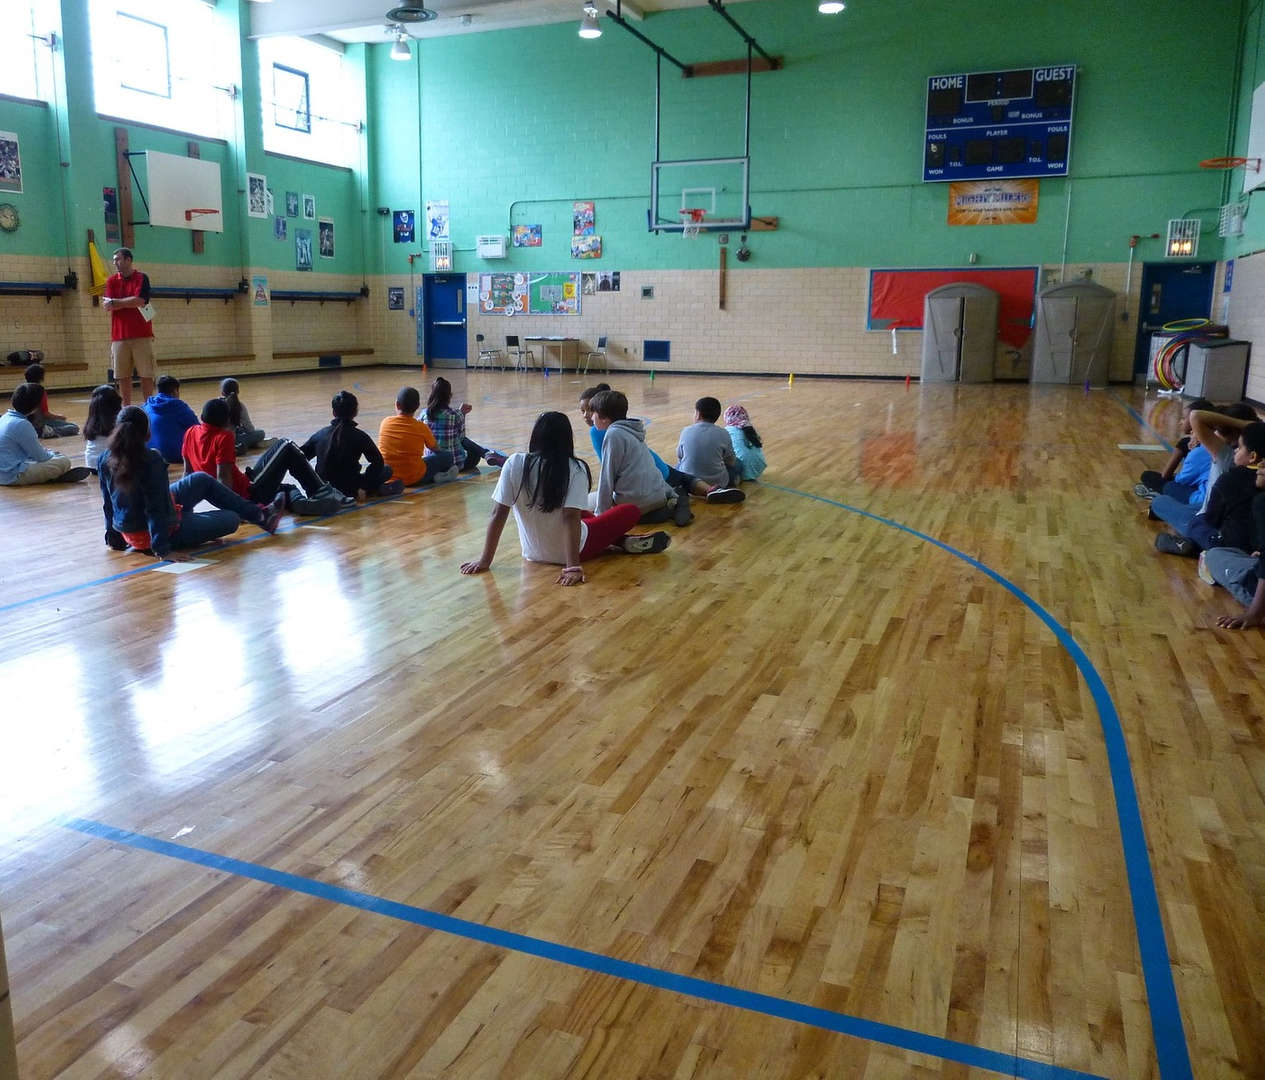 Students gather in gym during P.E.